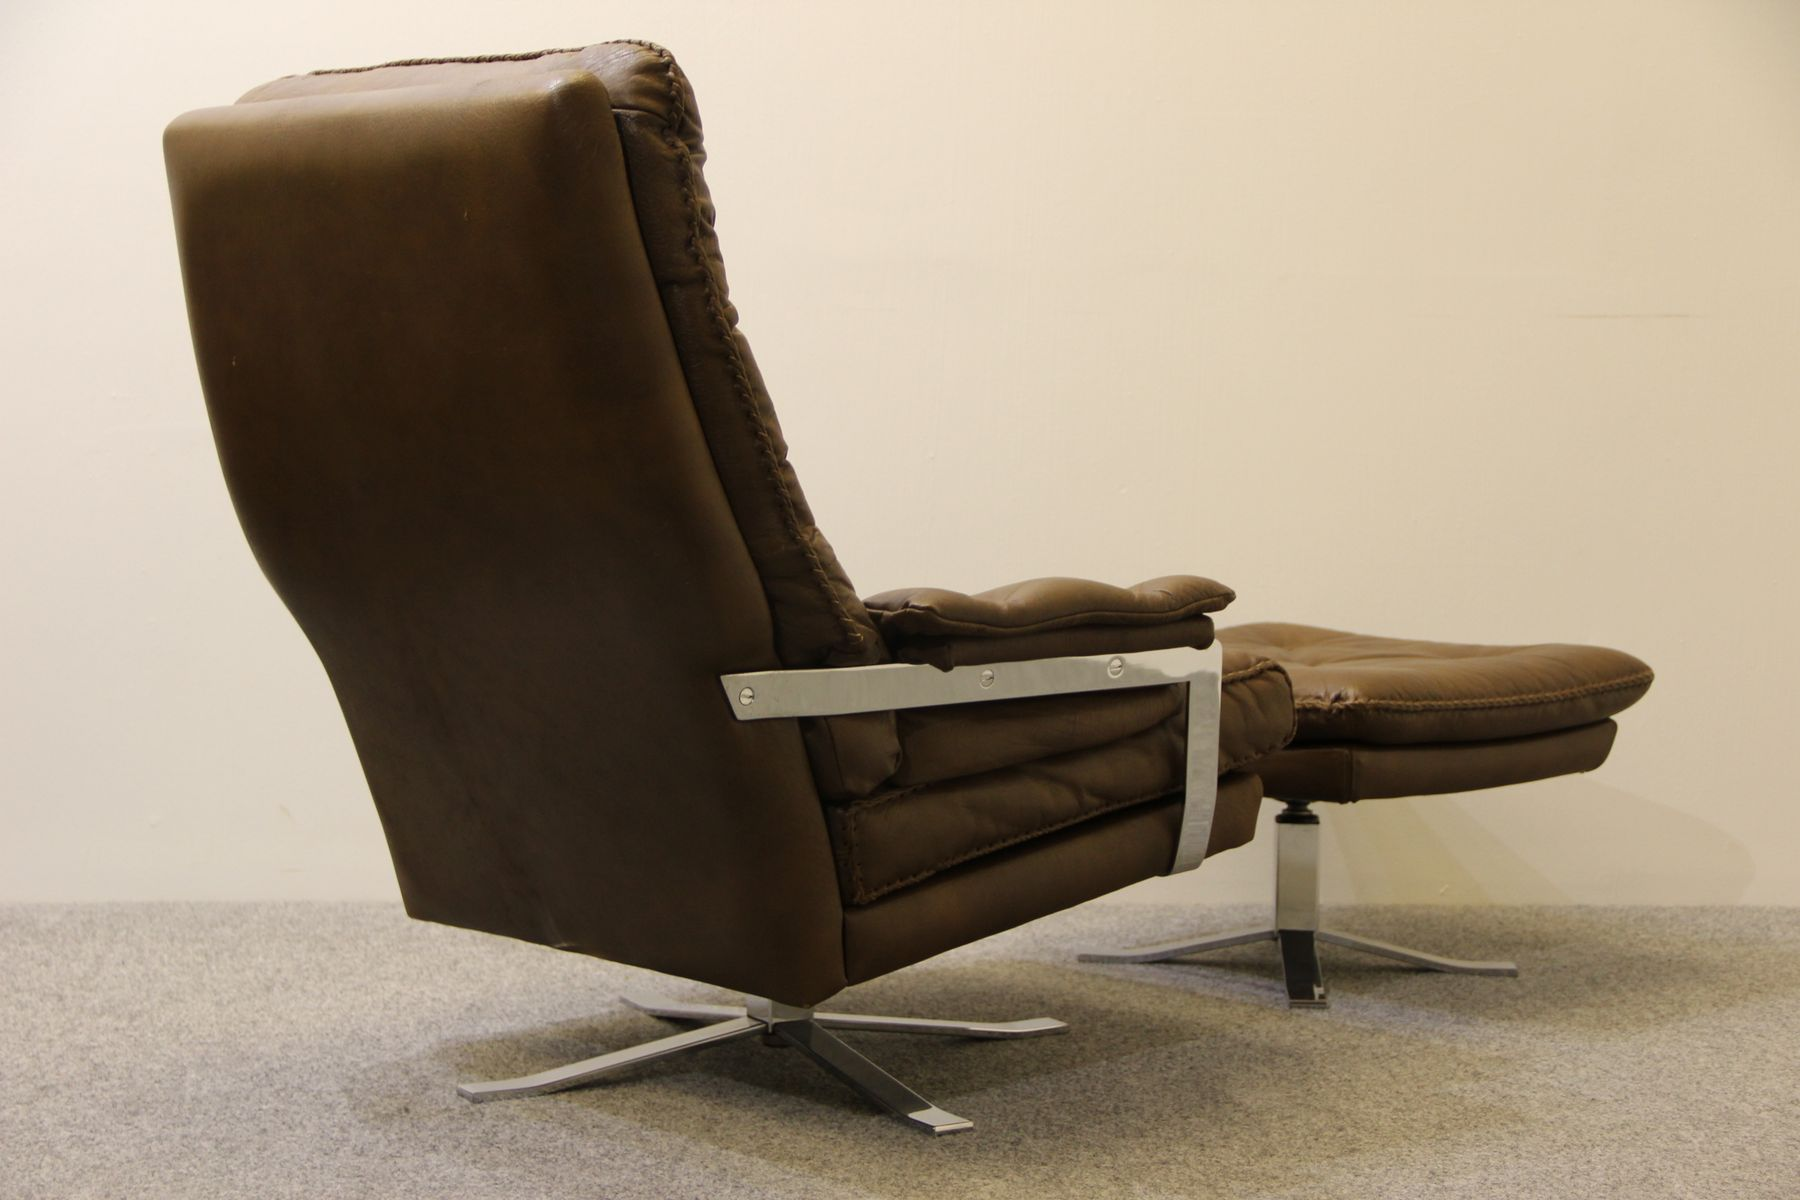 Retro Buffalo Leather Armchair and Footstool by Arne Norell for